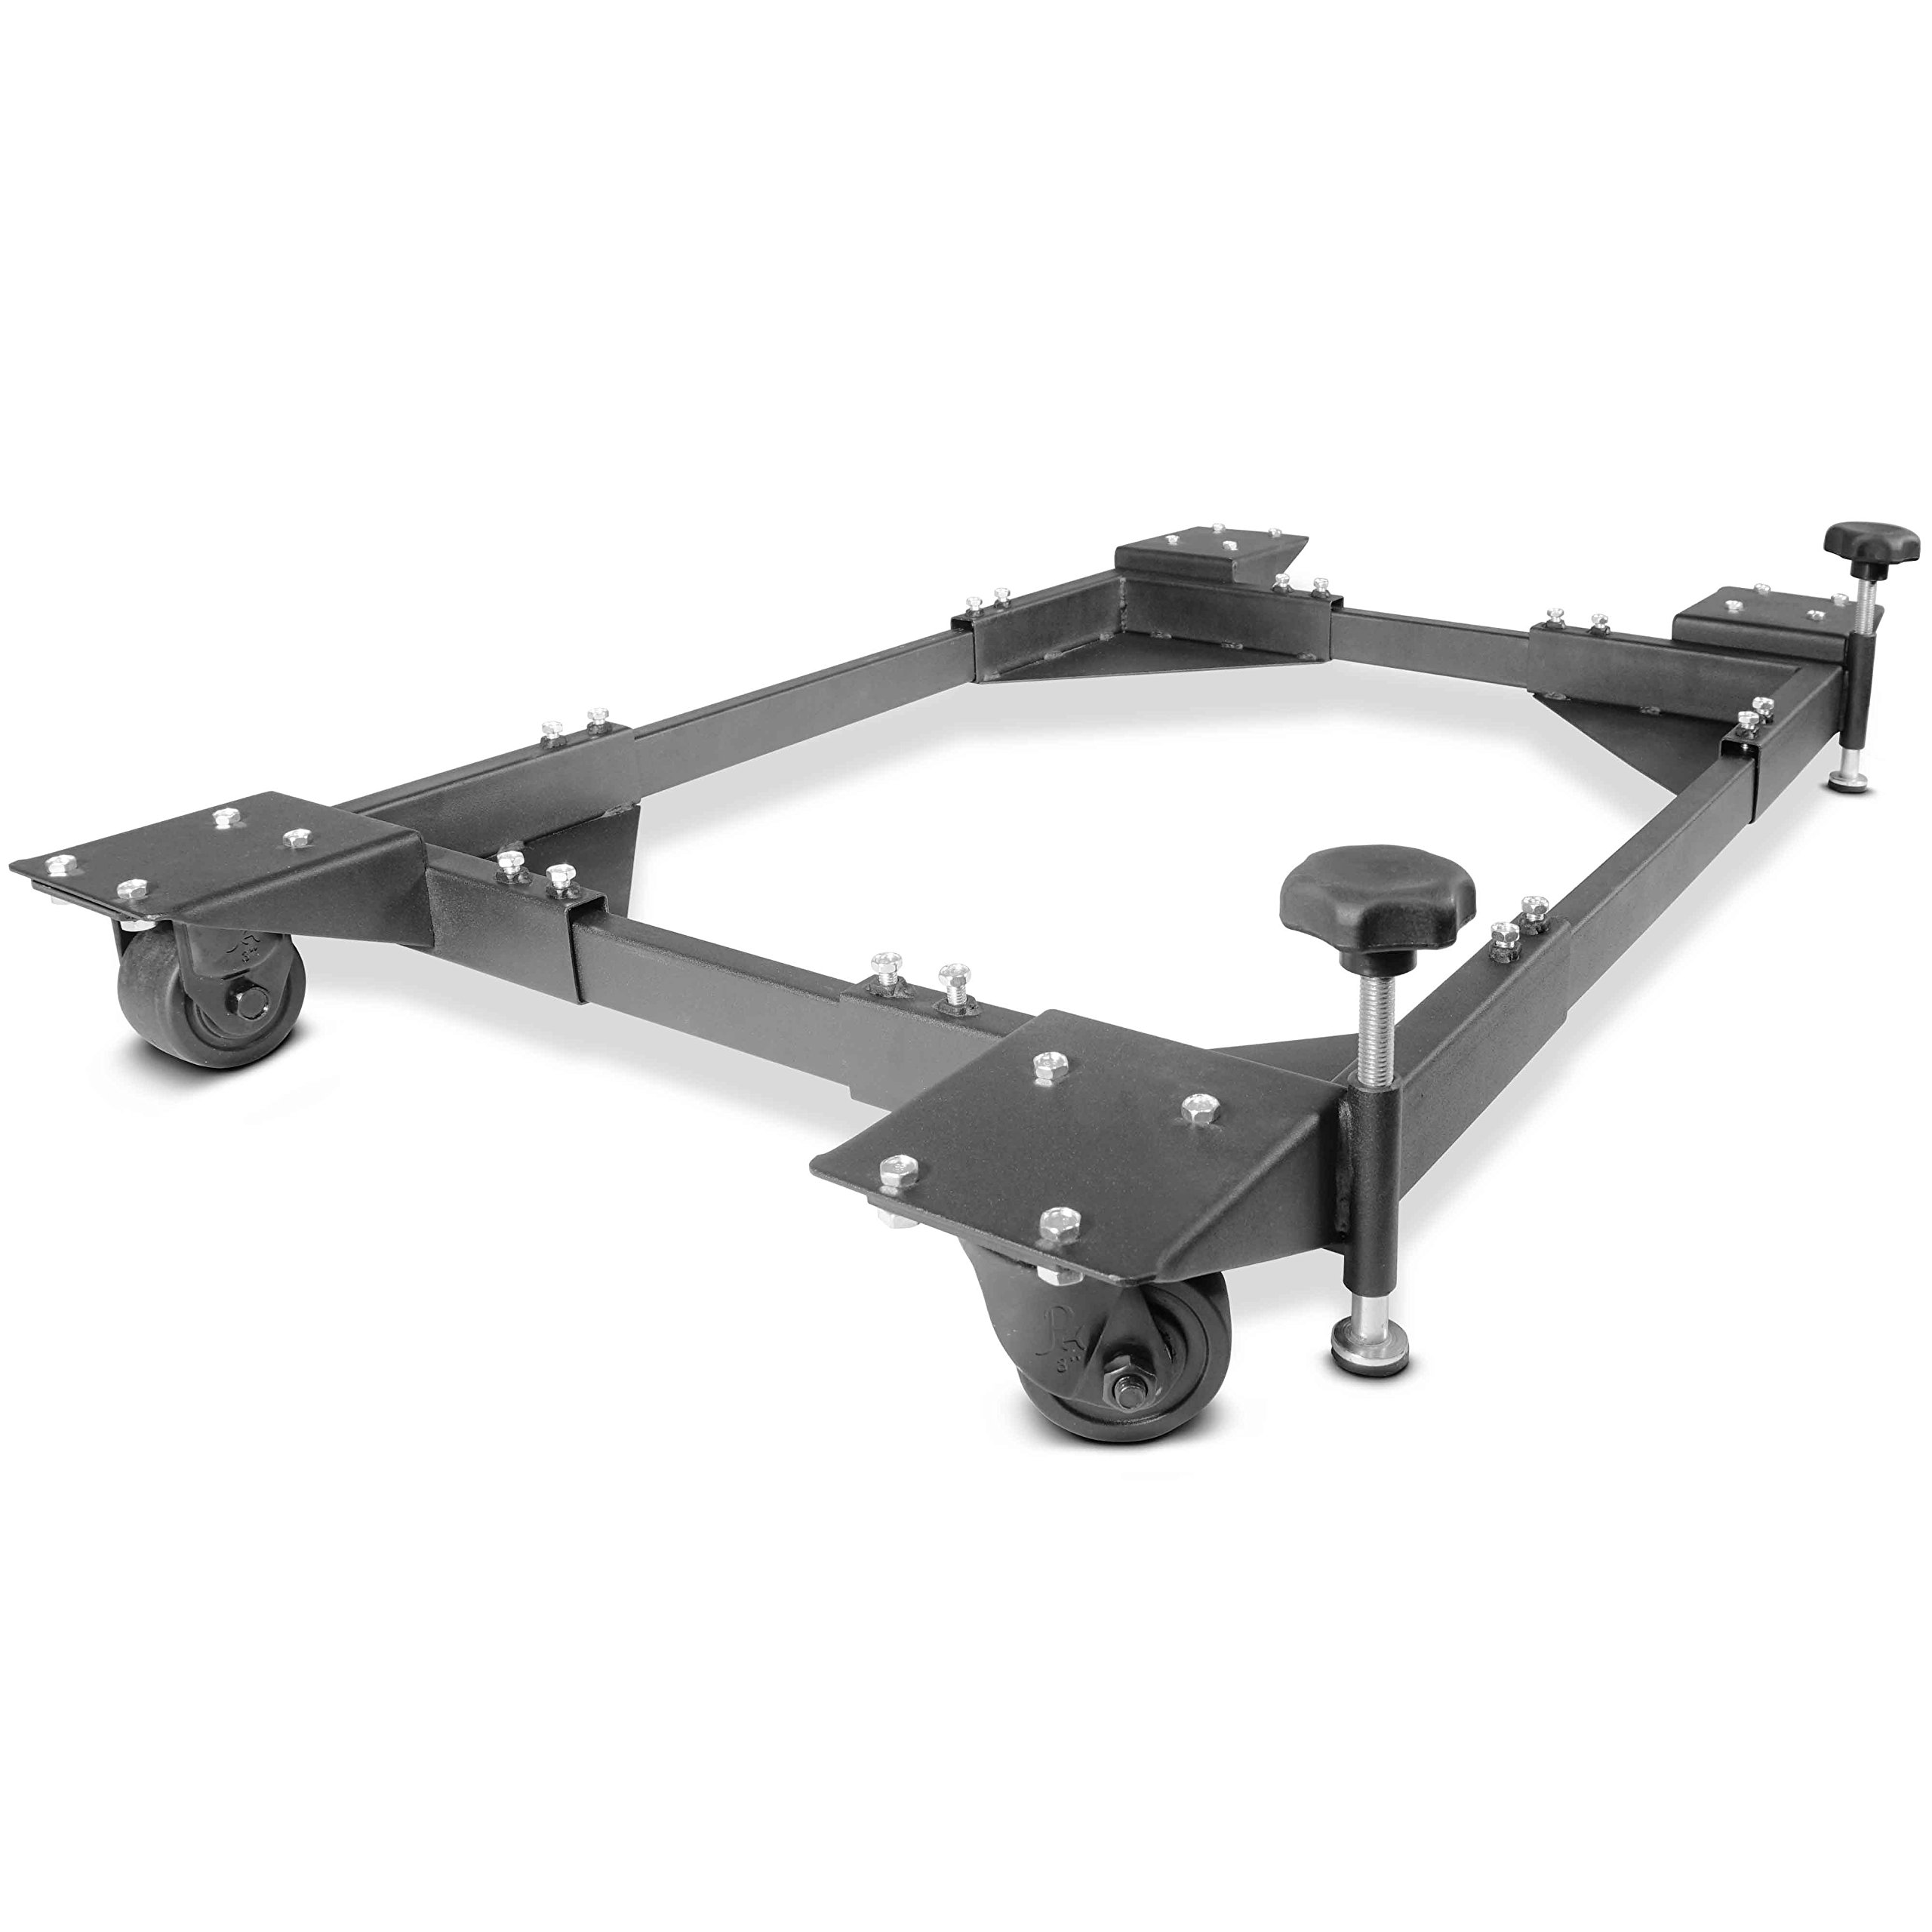 Titan Adjustable Mobile Base Dolly 1200 lb Capacity HD Universal Power Tools - Make Your Workshop Portable & Easy To Use by Titan Attachments (Image #1)